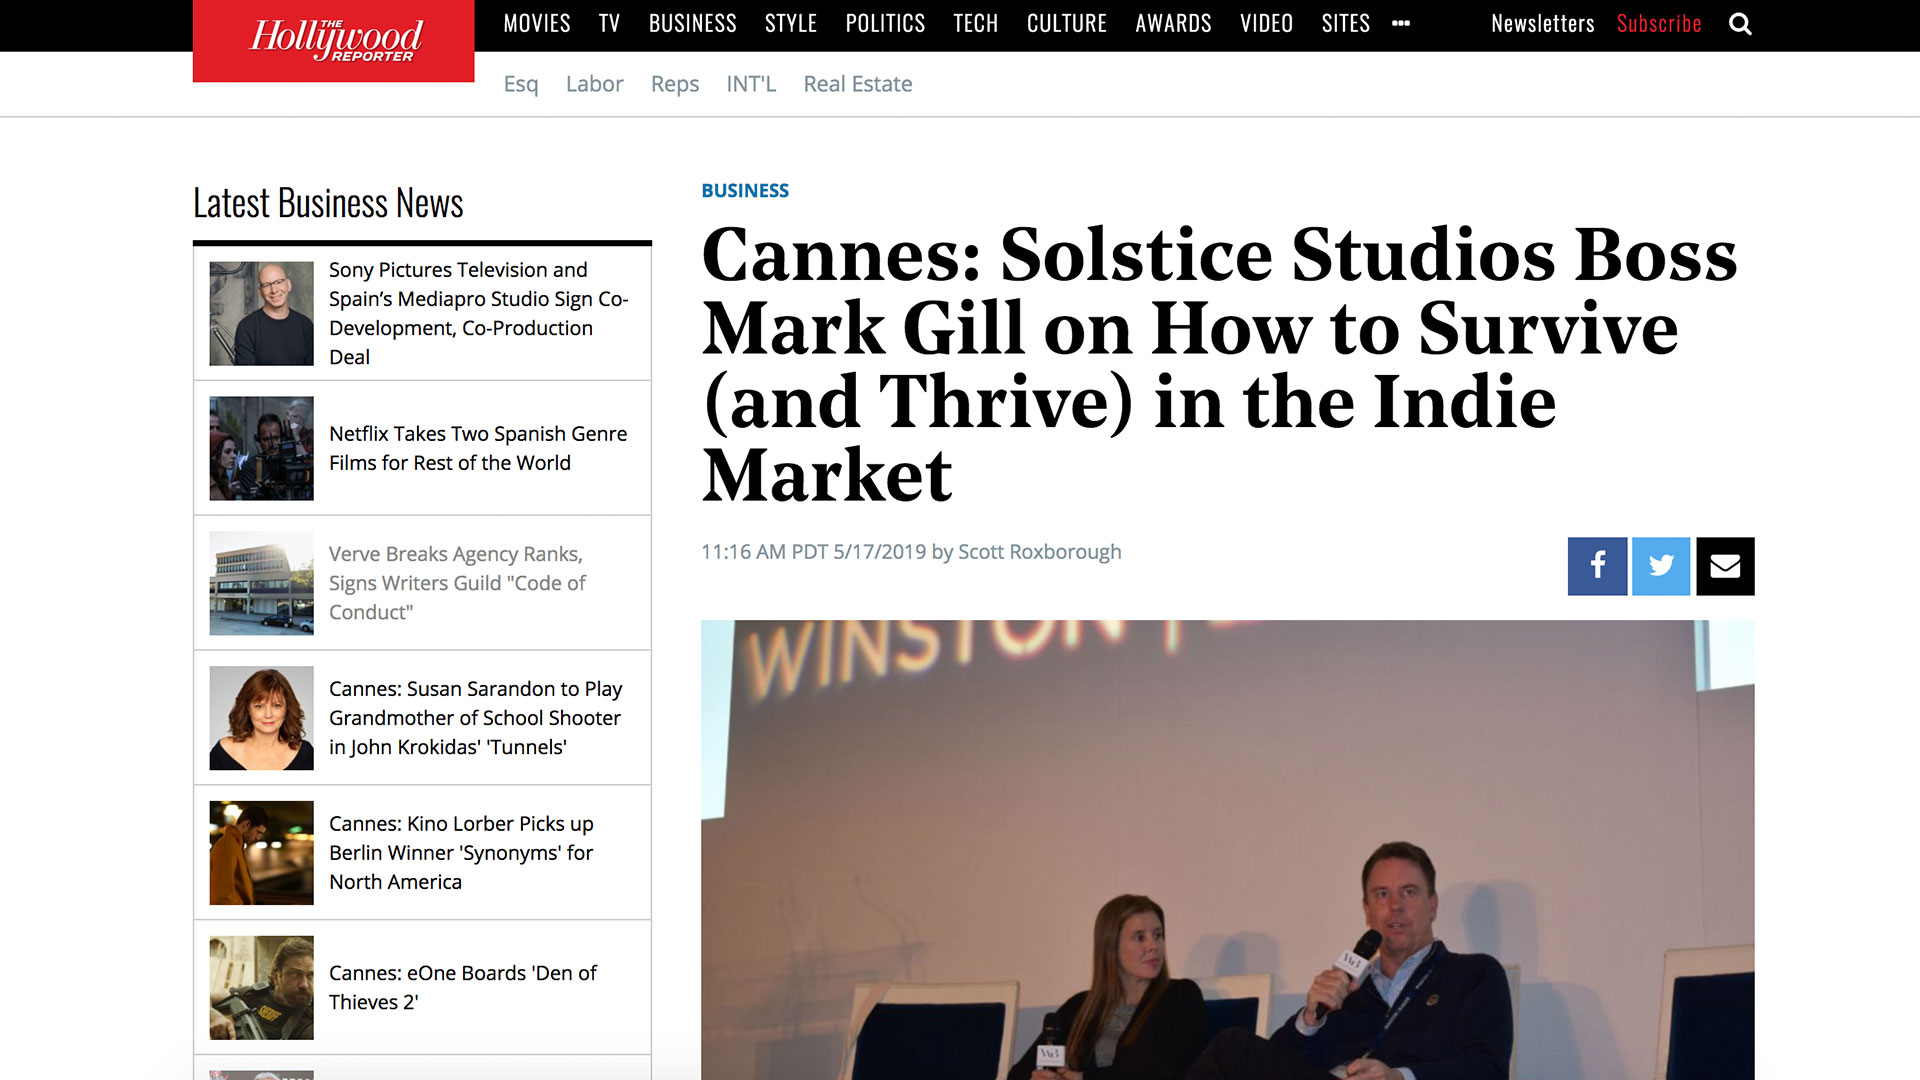 Fairness Rocks News Cannes: Solstice Studios Boss Mark Gill on How to Survive (and Thrive) in the Indie Market